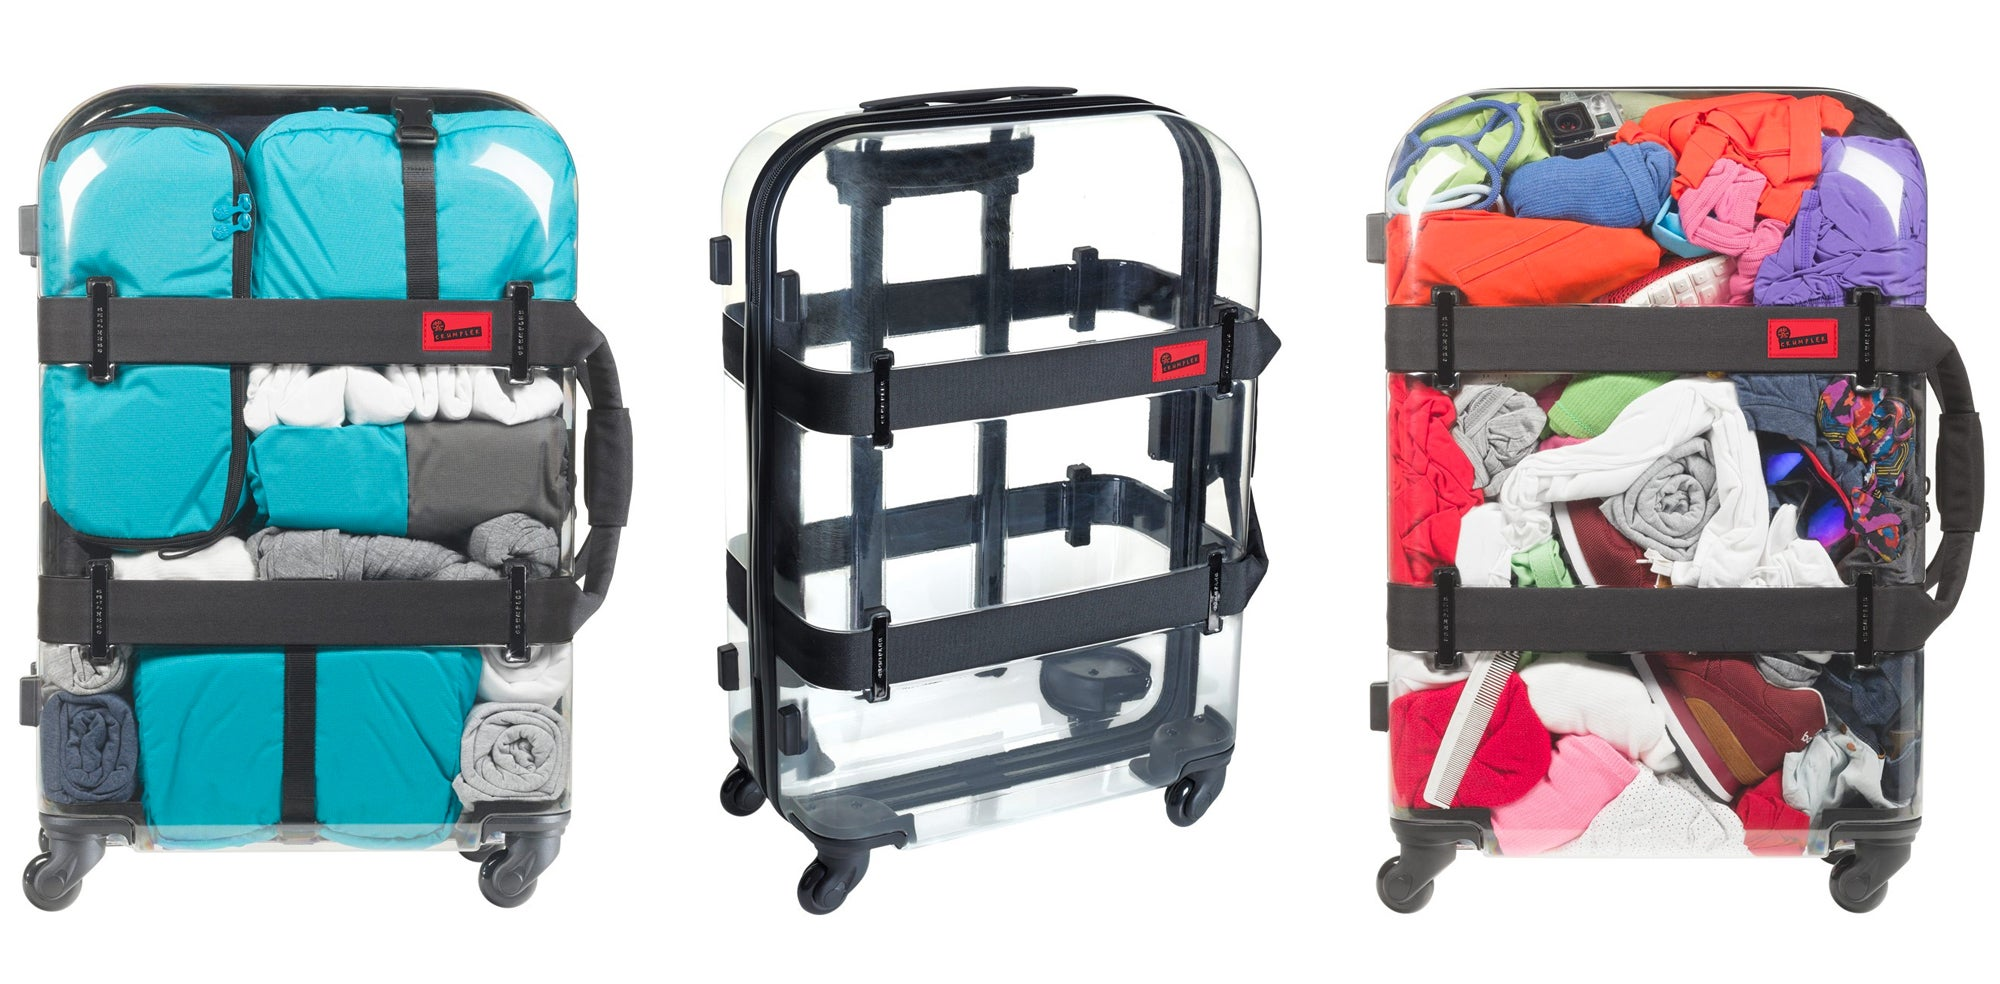 Travelling With A See-Through Suitcase Will Force You To Pack Neatly